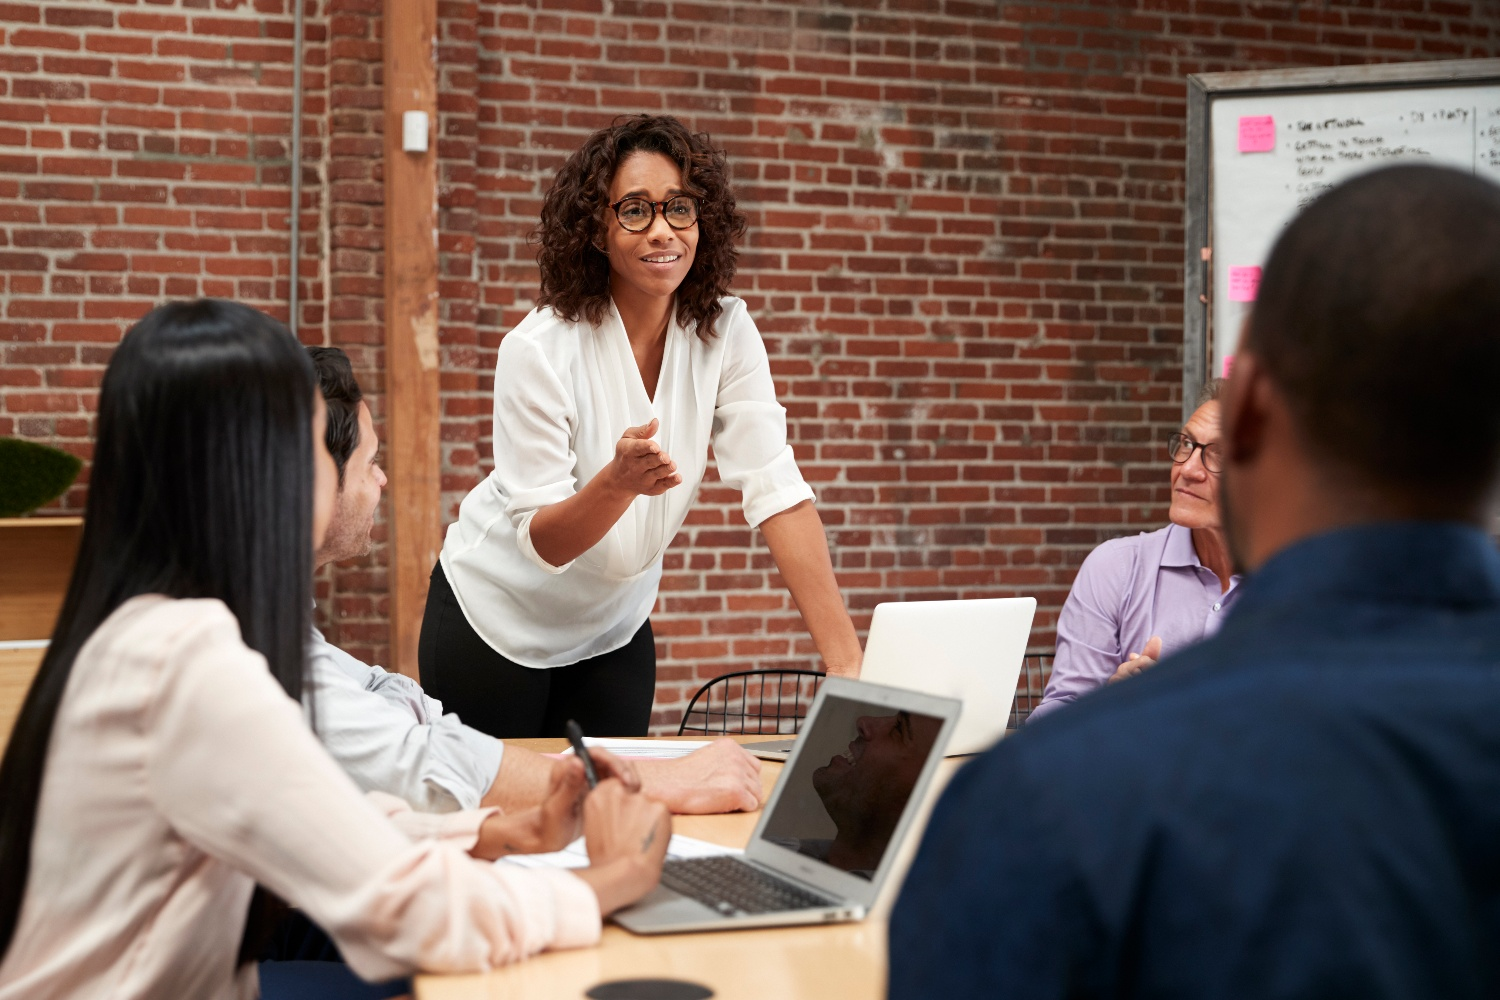 businesswoman-standing-and-leading-office-meeting--NVWRY95-1